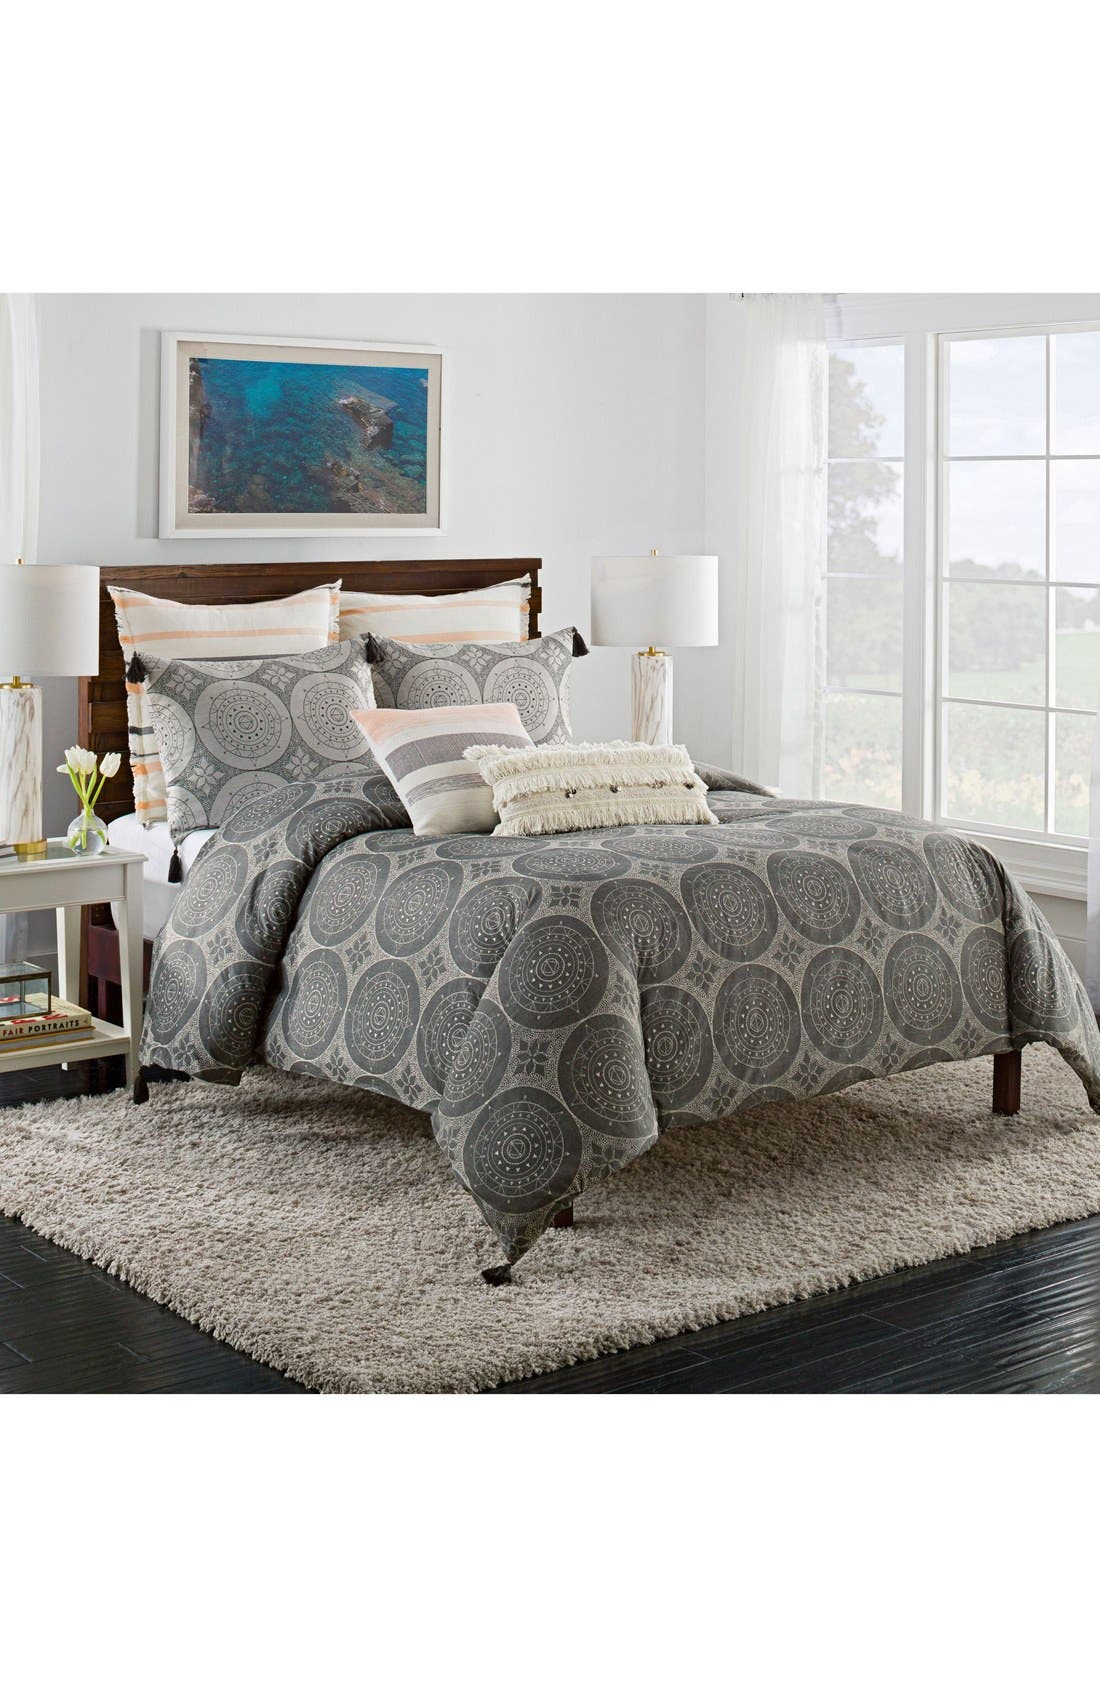 Cupcakes And Cashmere Dotted Medallion Duvet Cover Nordstrom